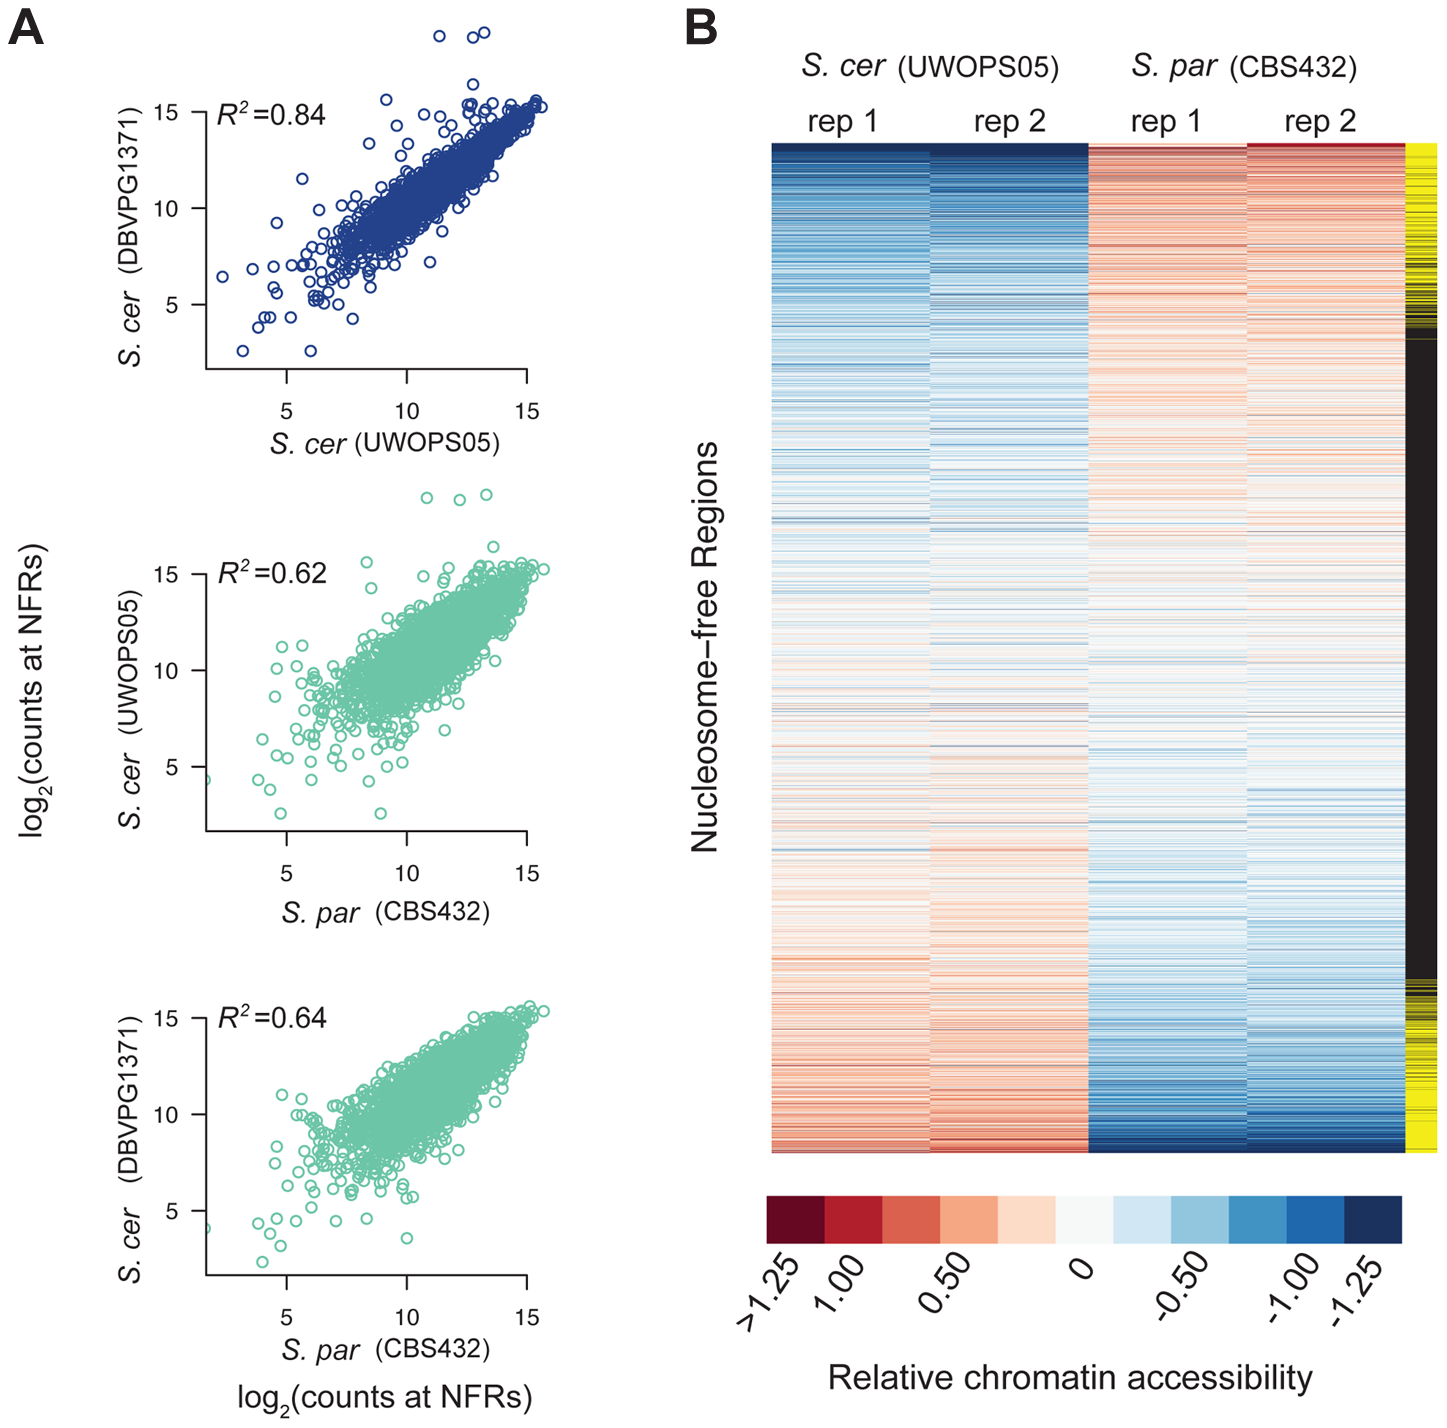 Patterns of chromatin accessibility within and between <i>S. cerevisiae</i> and <i>S. paradoxus</i>.